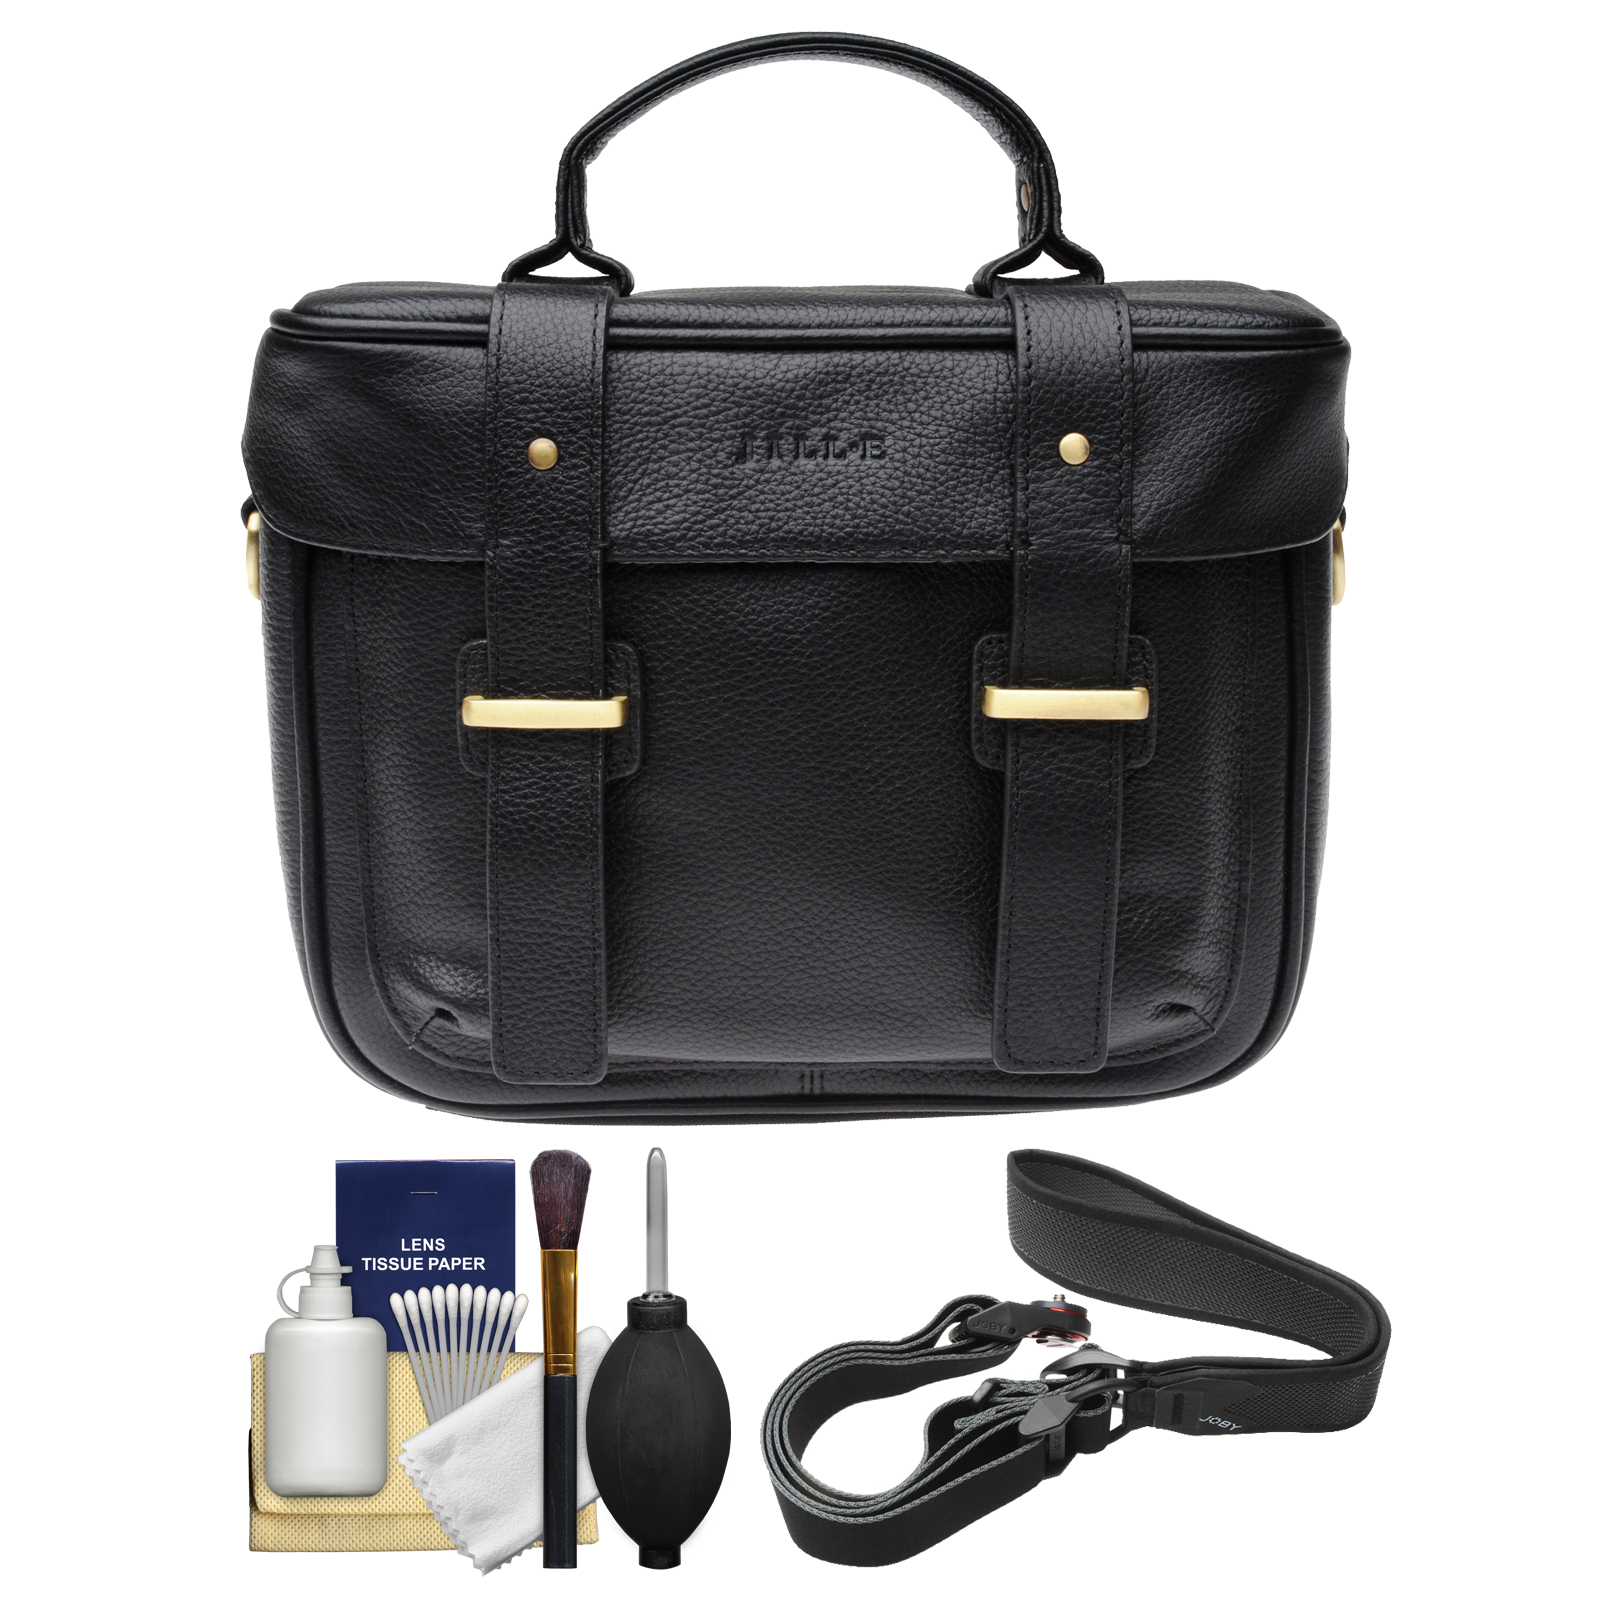 Jill-e Juliette All Leather DSLR Camera Bag (Black) with Camera Strap + Cleaning Kit